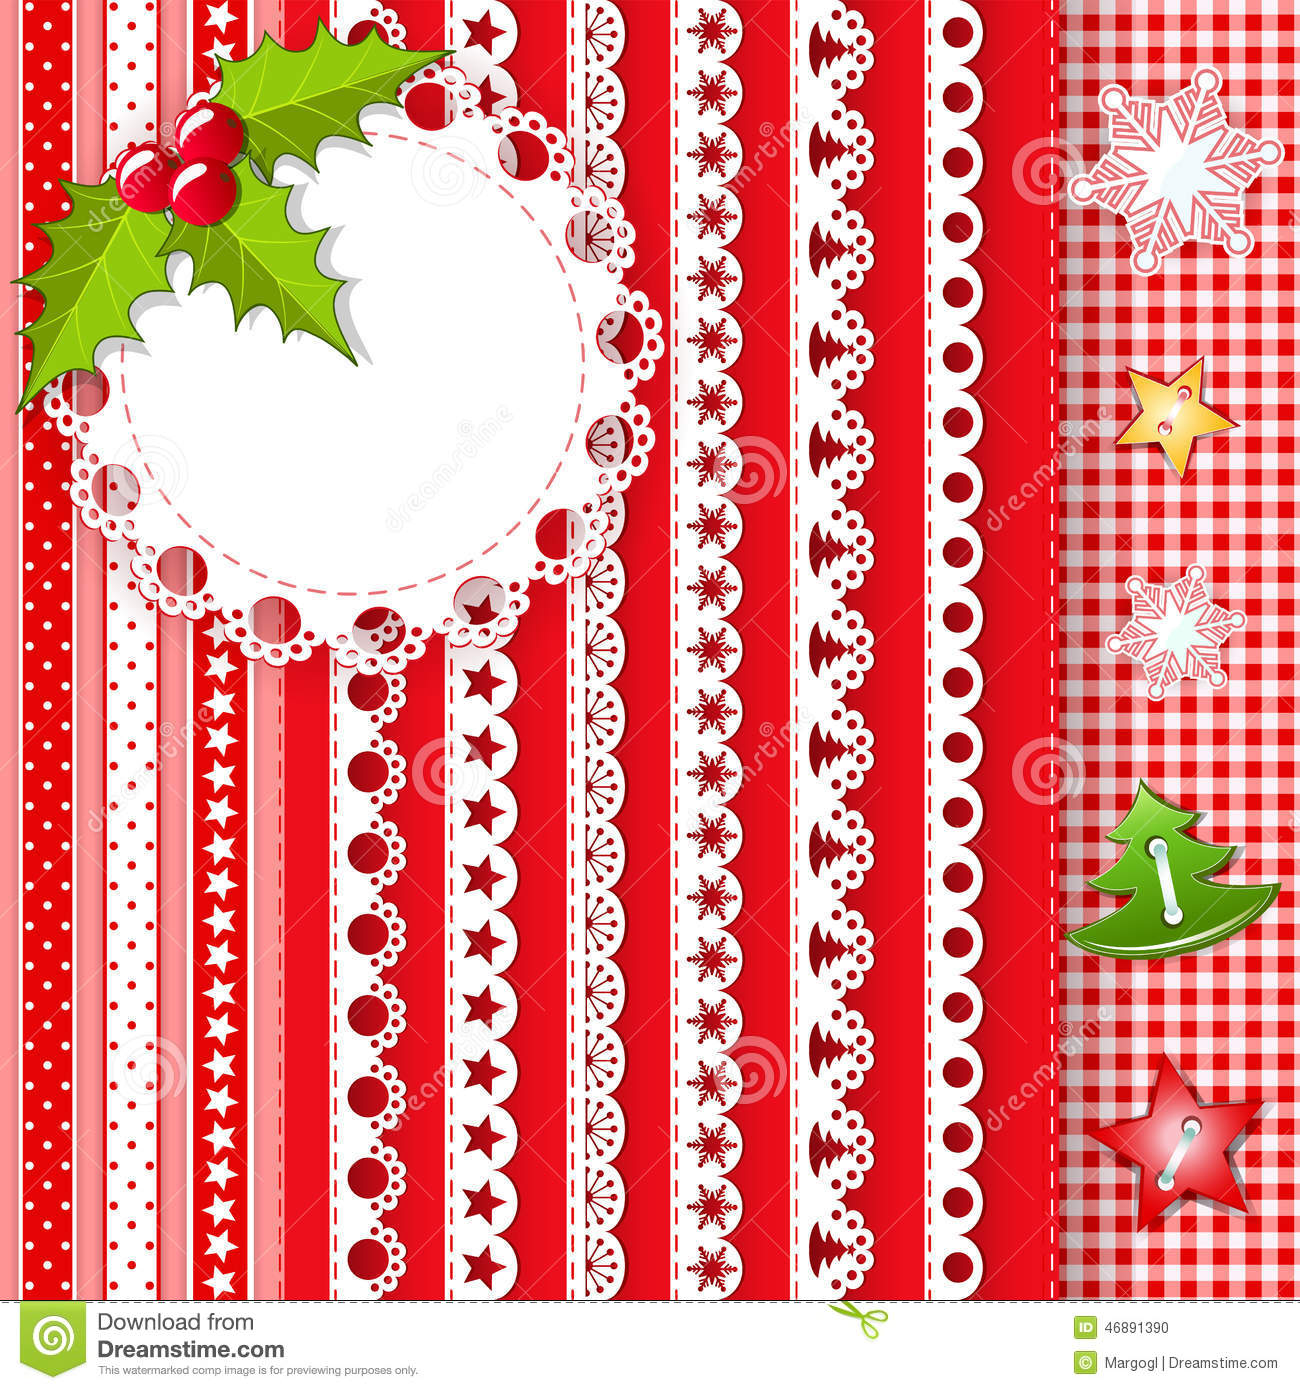 Collection For Scrapbook Borders Stock Vector Illustration Of